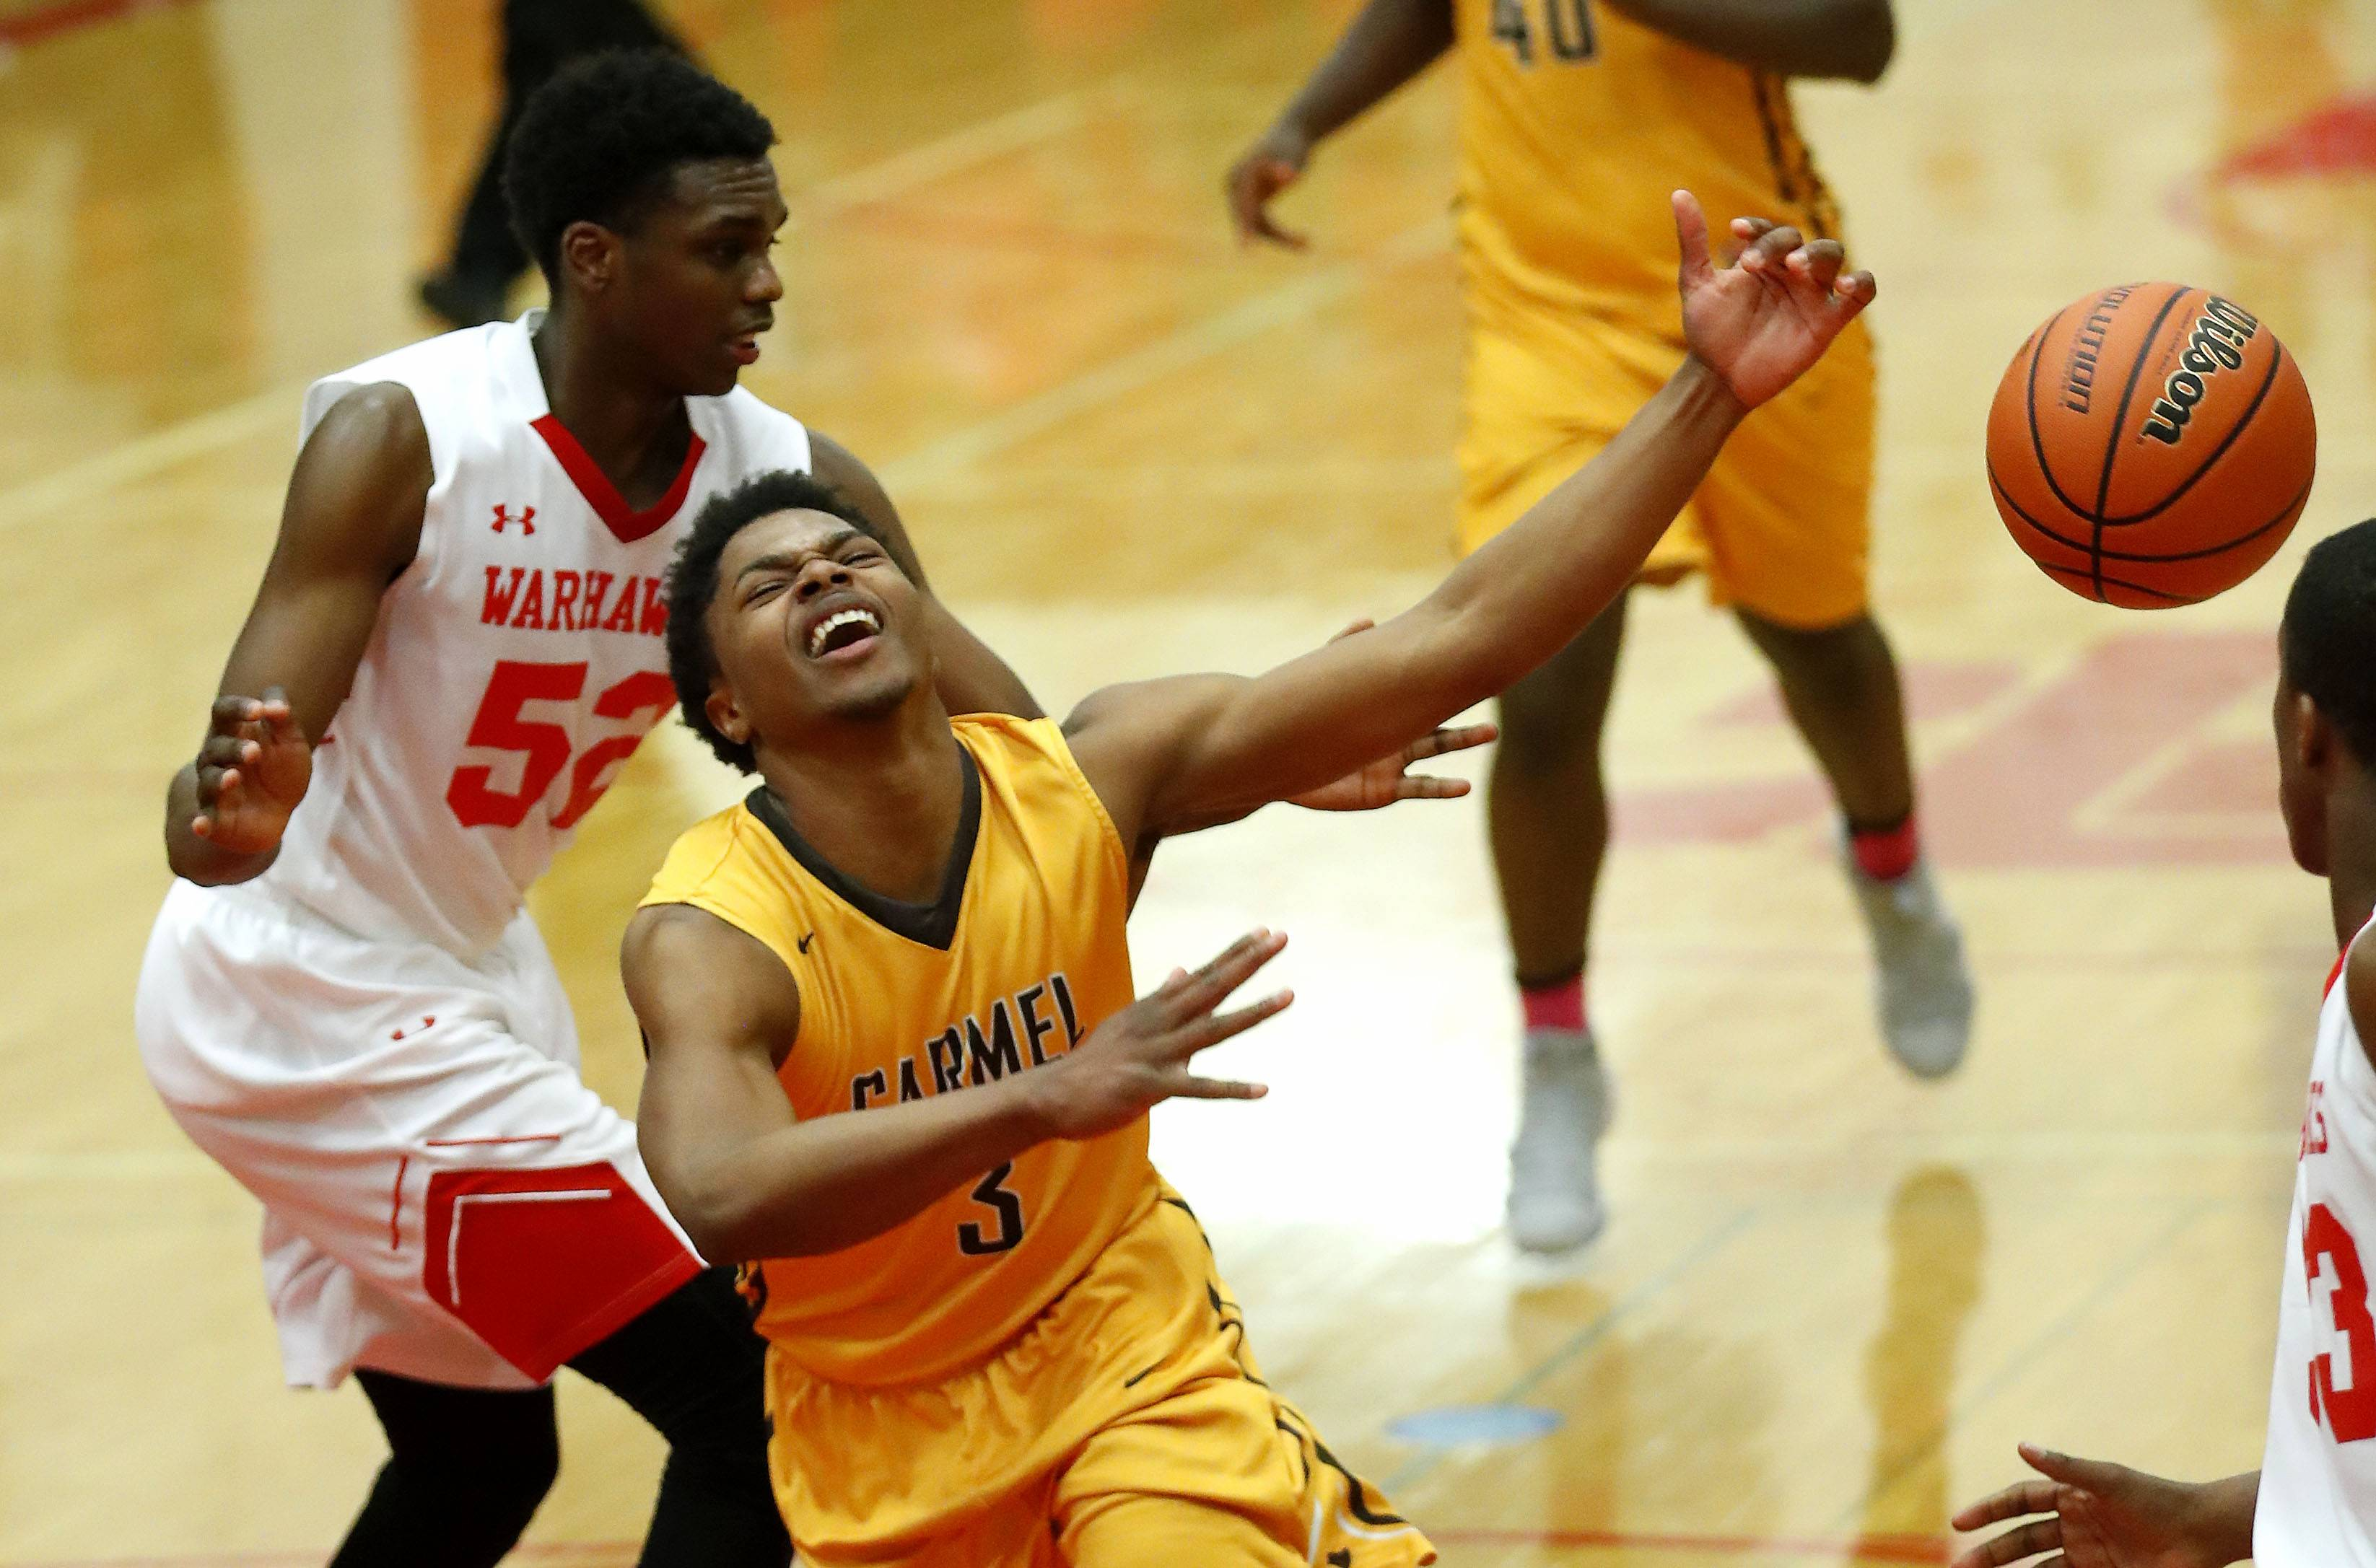 Carmel's Zion Kilpatrick is fouled by North Chicago's Pierce Coleman during Class 3A sectional semifinal play Wednesday at North Chicago.